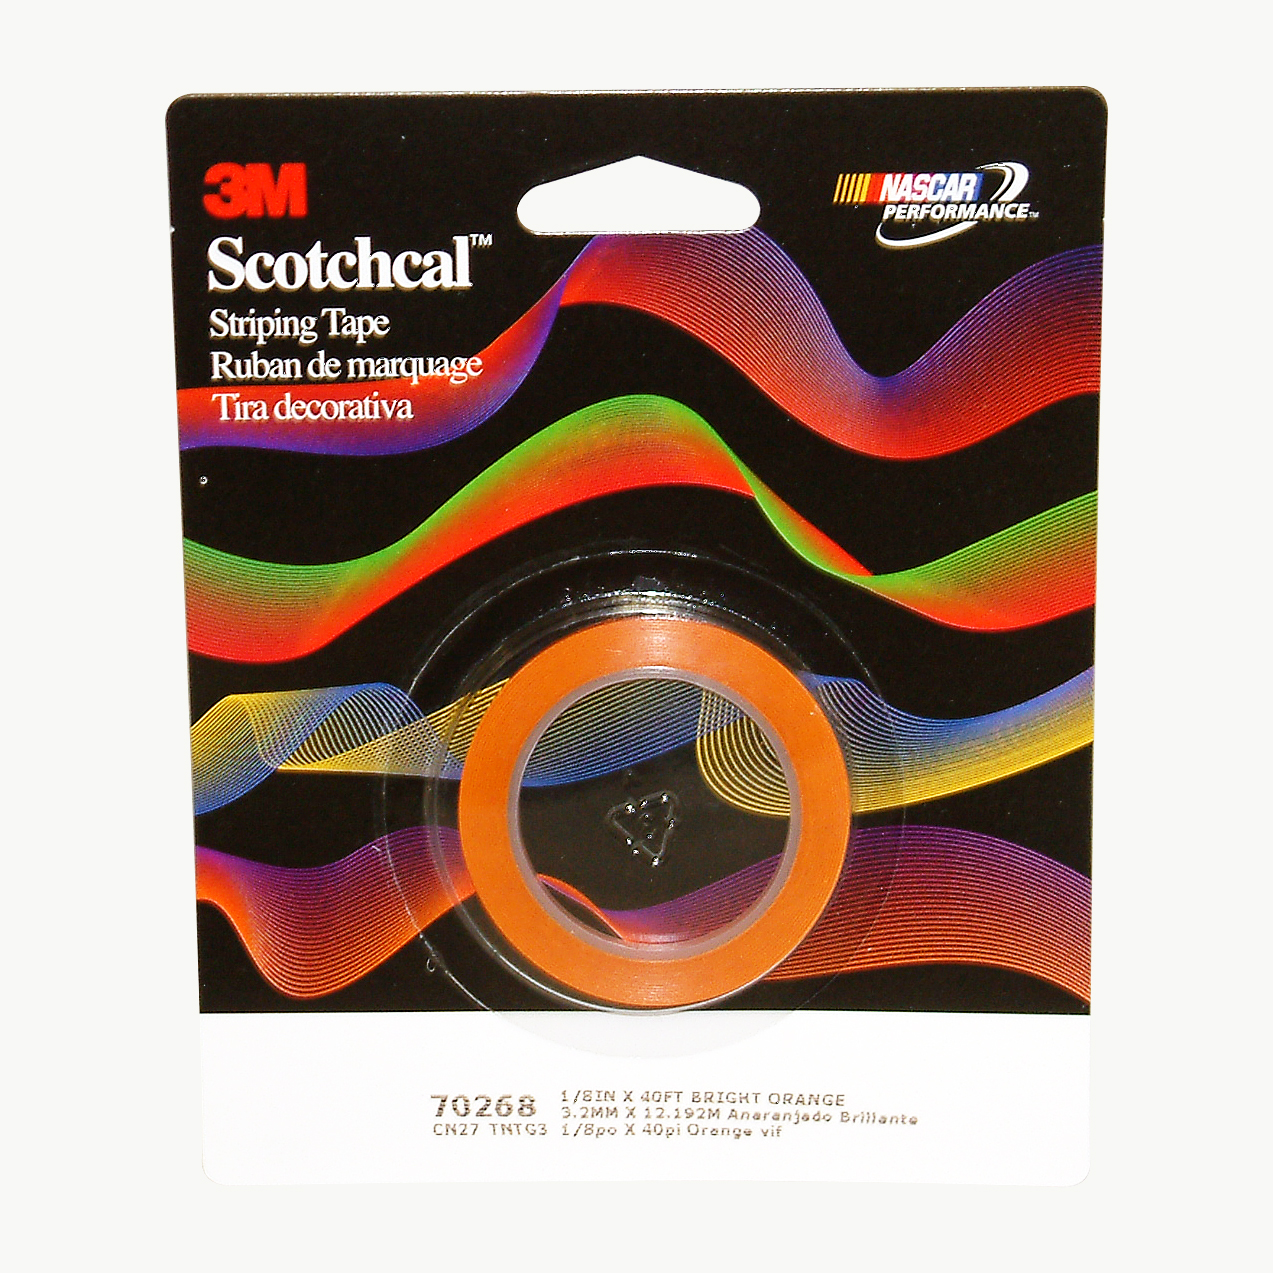 Image of 3M Scotch Scotchcal Striping Tape: 1/8 in. x 40 ft. (Bright Orange)